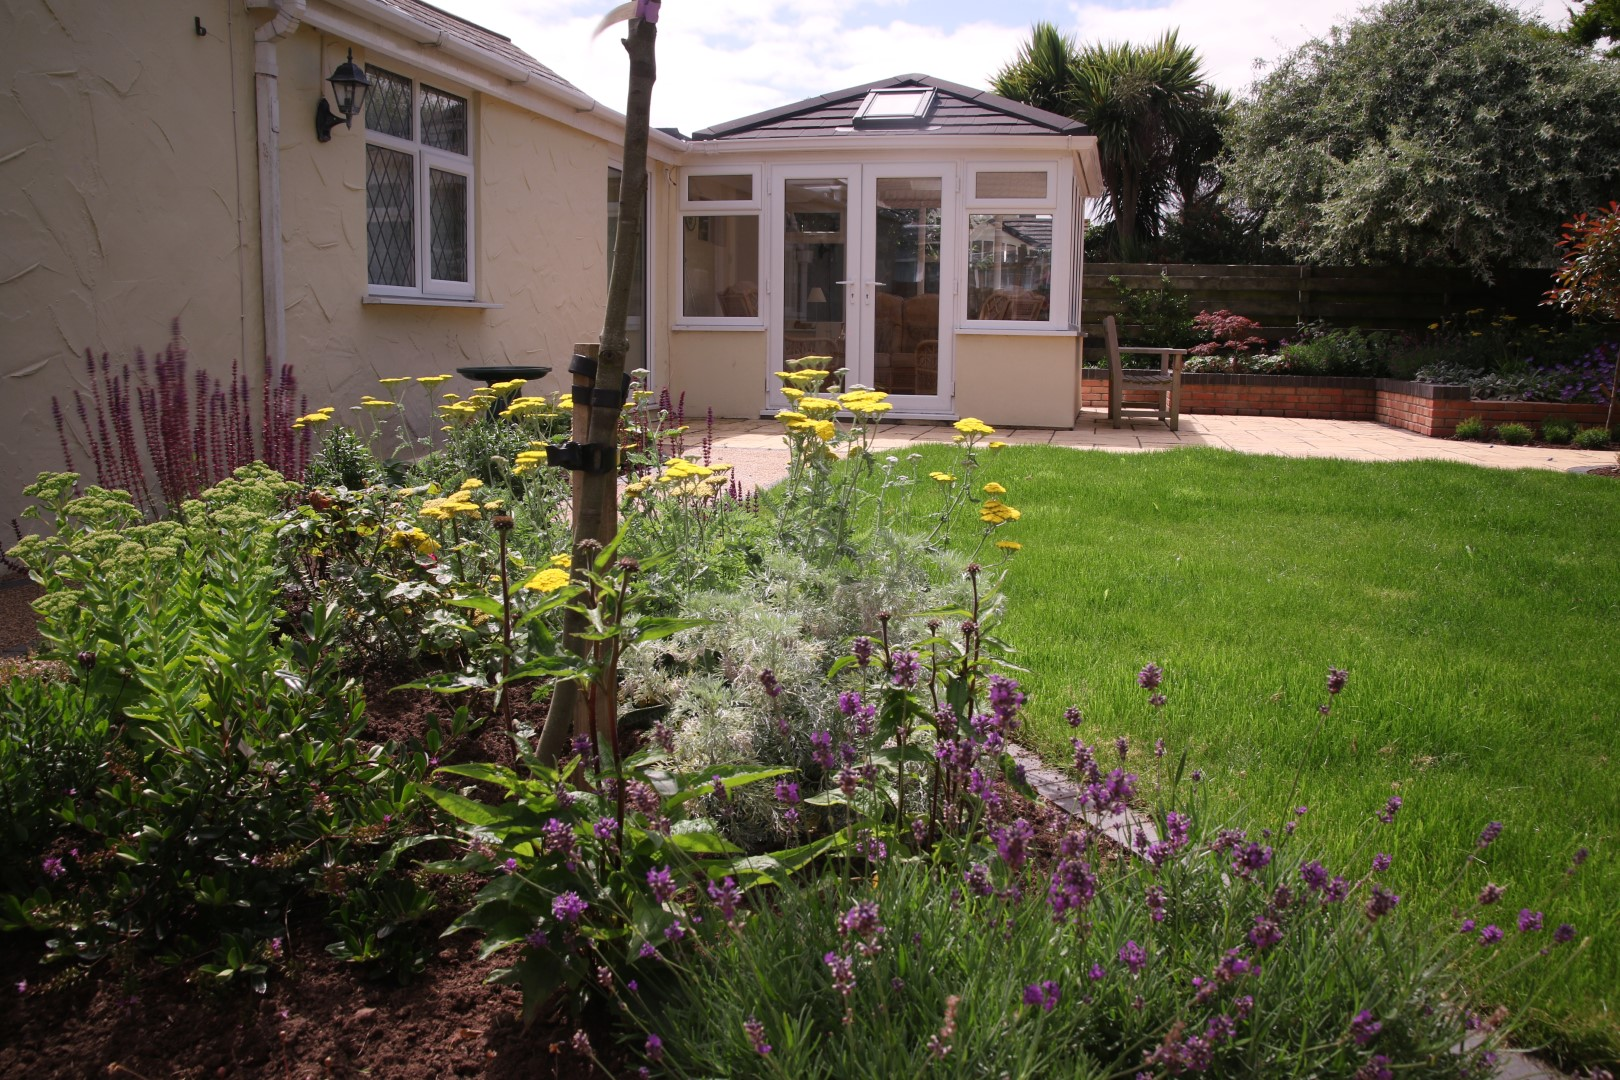 Purple and yellow flowers in decorative flower bed overlooked by a conservatory